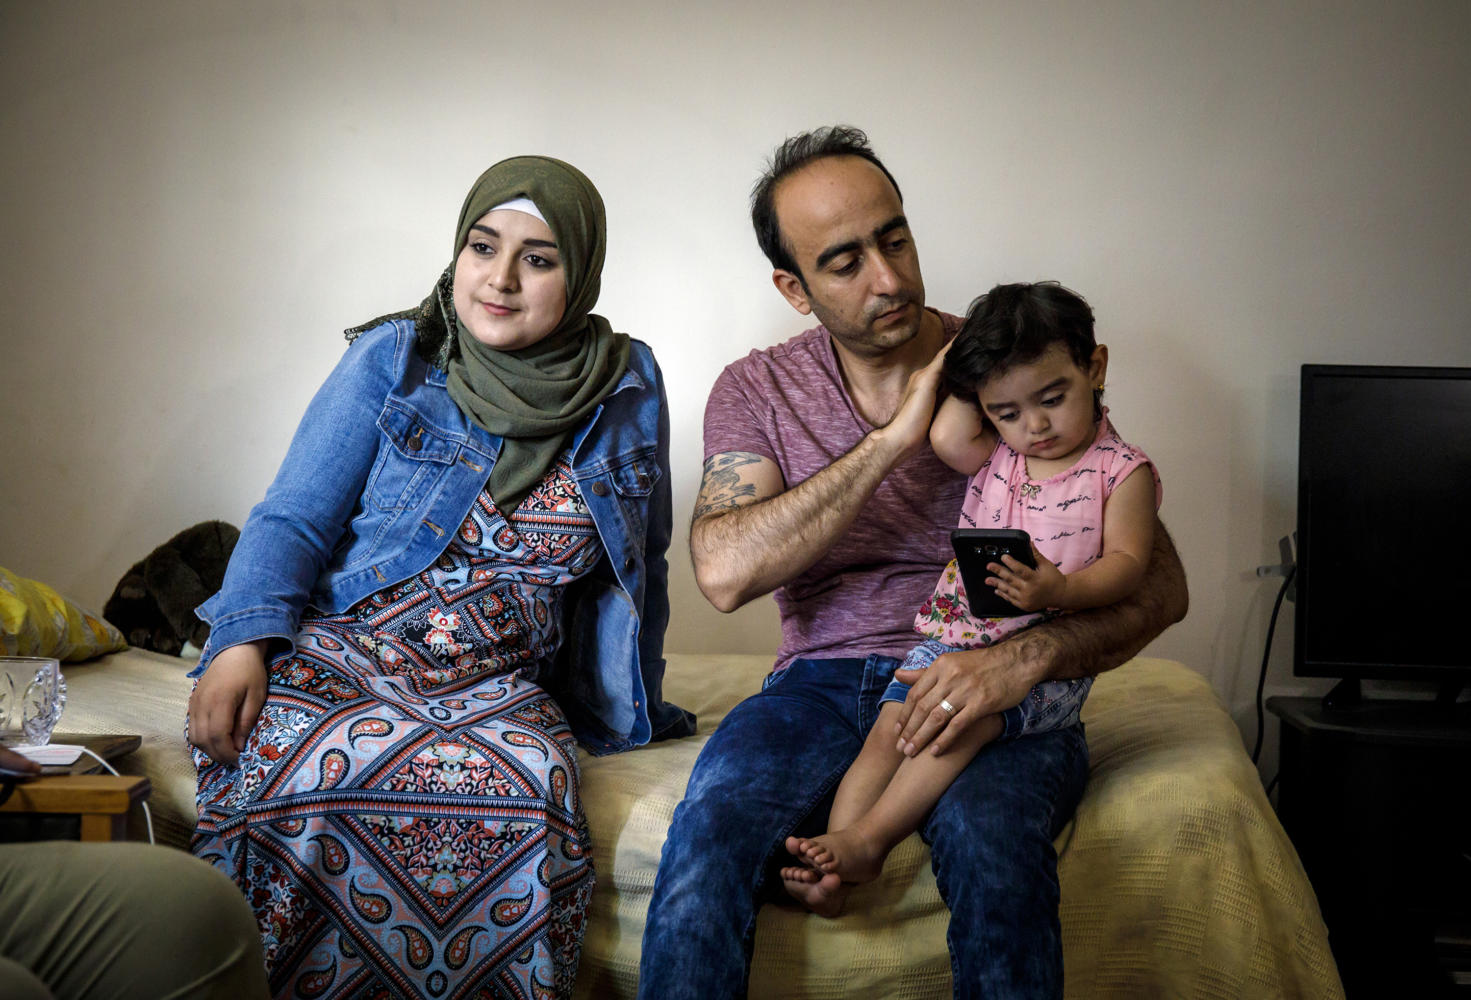 Baraa, Abdulmajeed and Sham Haj Khalaf sit in the living room of their Skokie, Ill. home on July 23, 2017. The family emigrated as refugees from Syria. (Brian Cassella/Chicago Tribune/TNS)